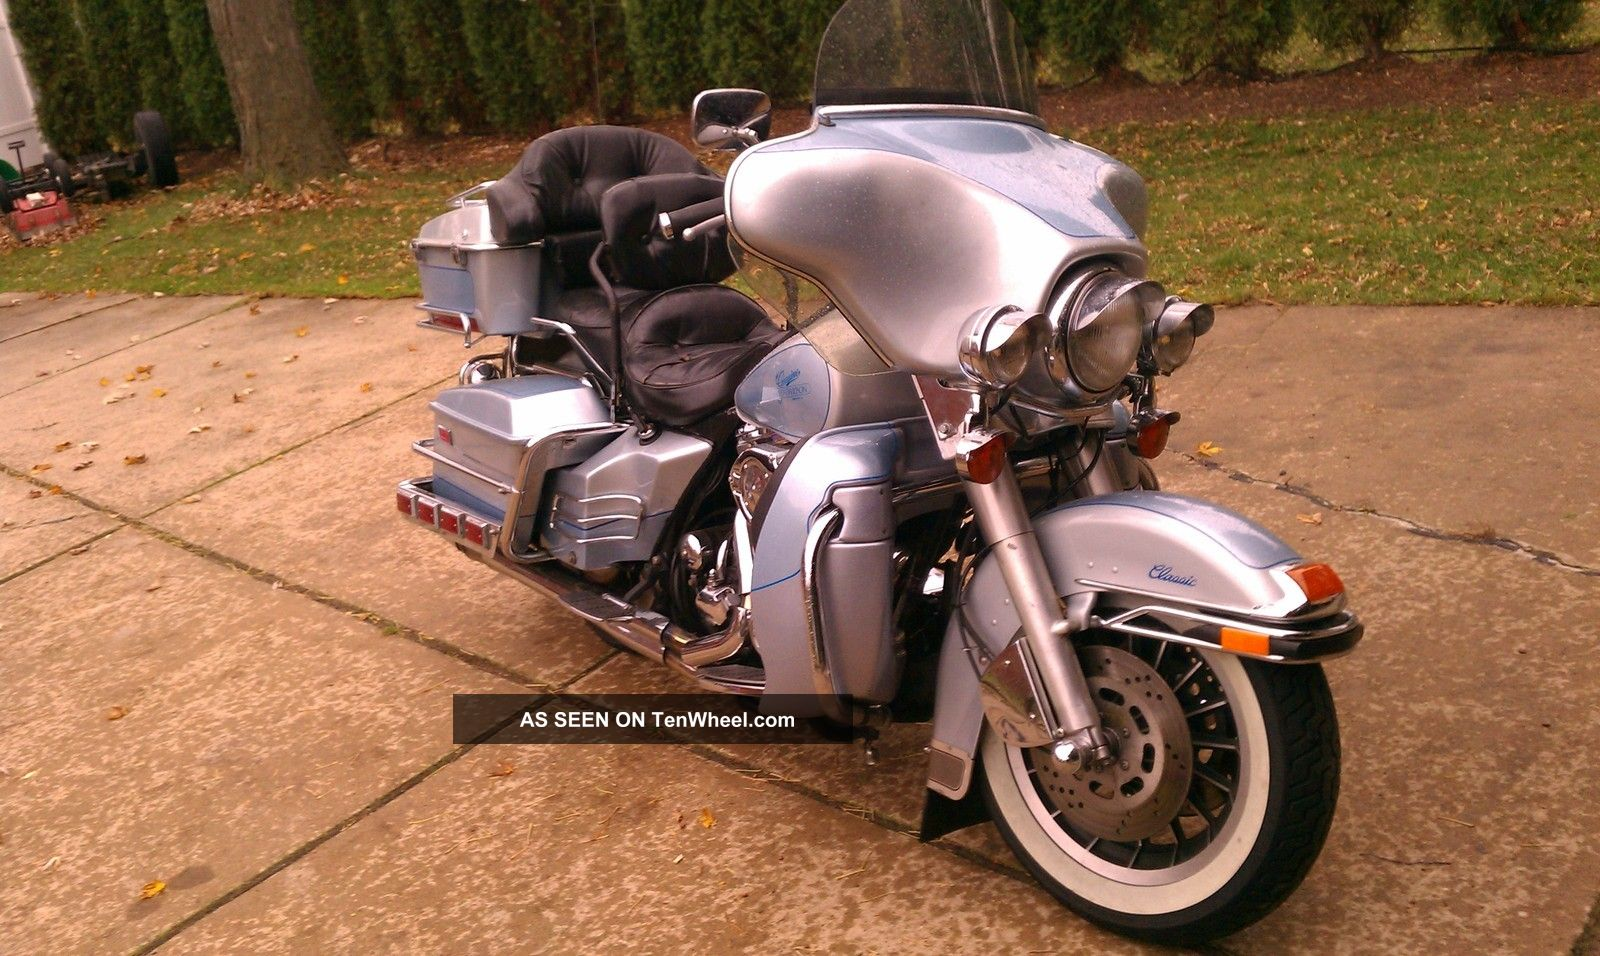 1986 Harley Davidson Electra Glide Custom Chrome 401 Of 650 Other photo